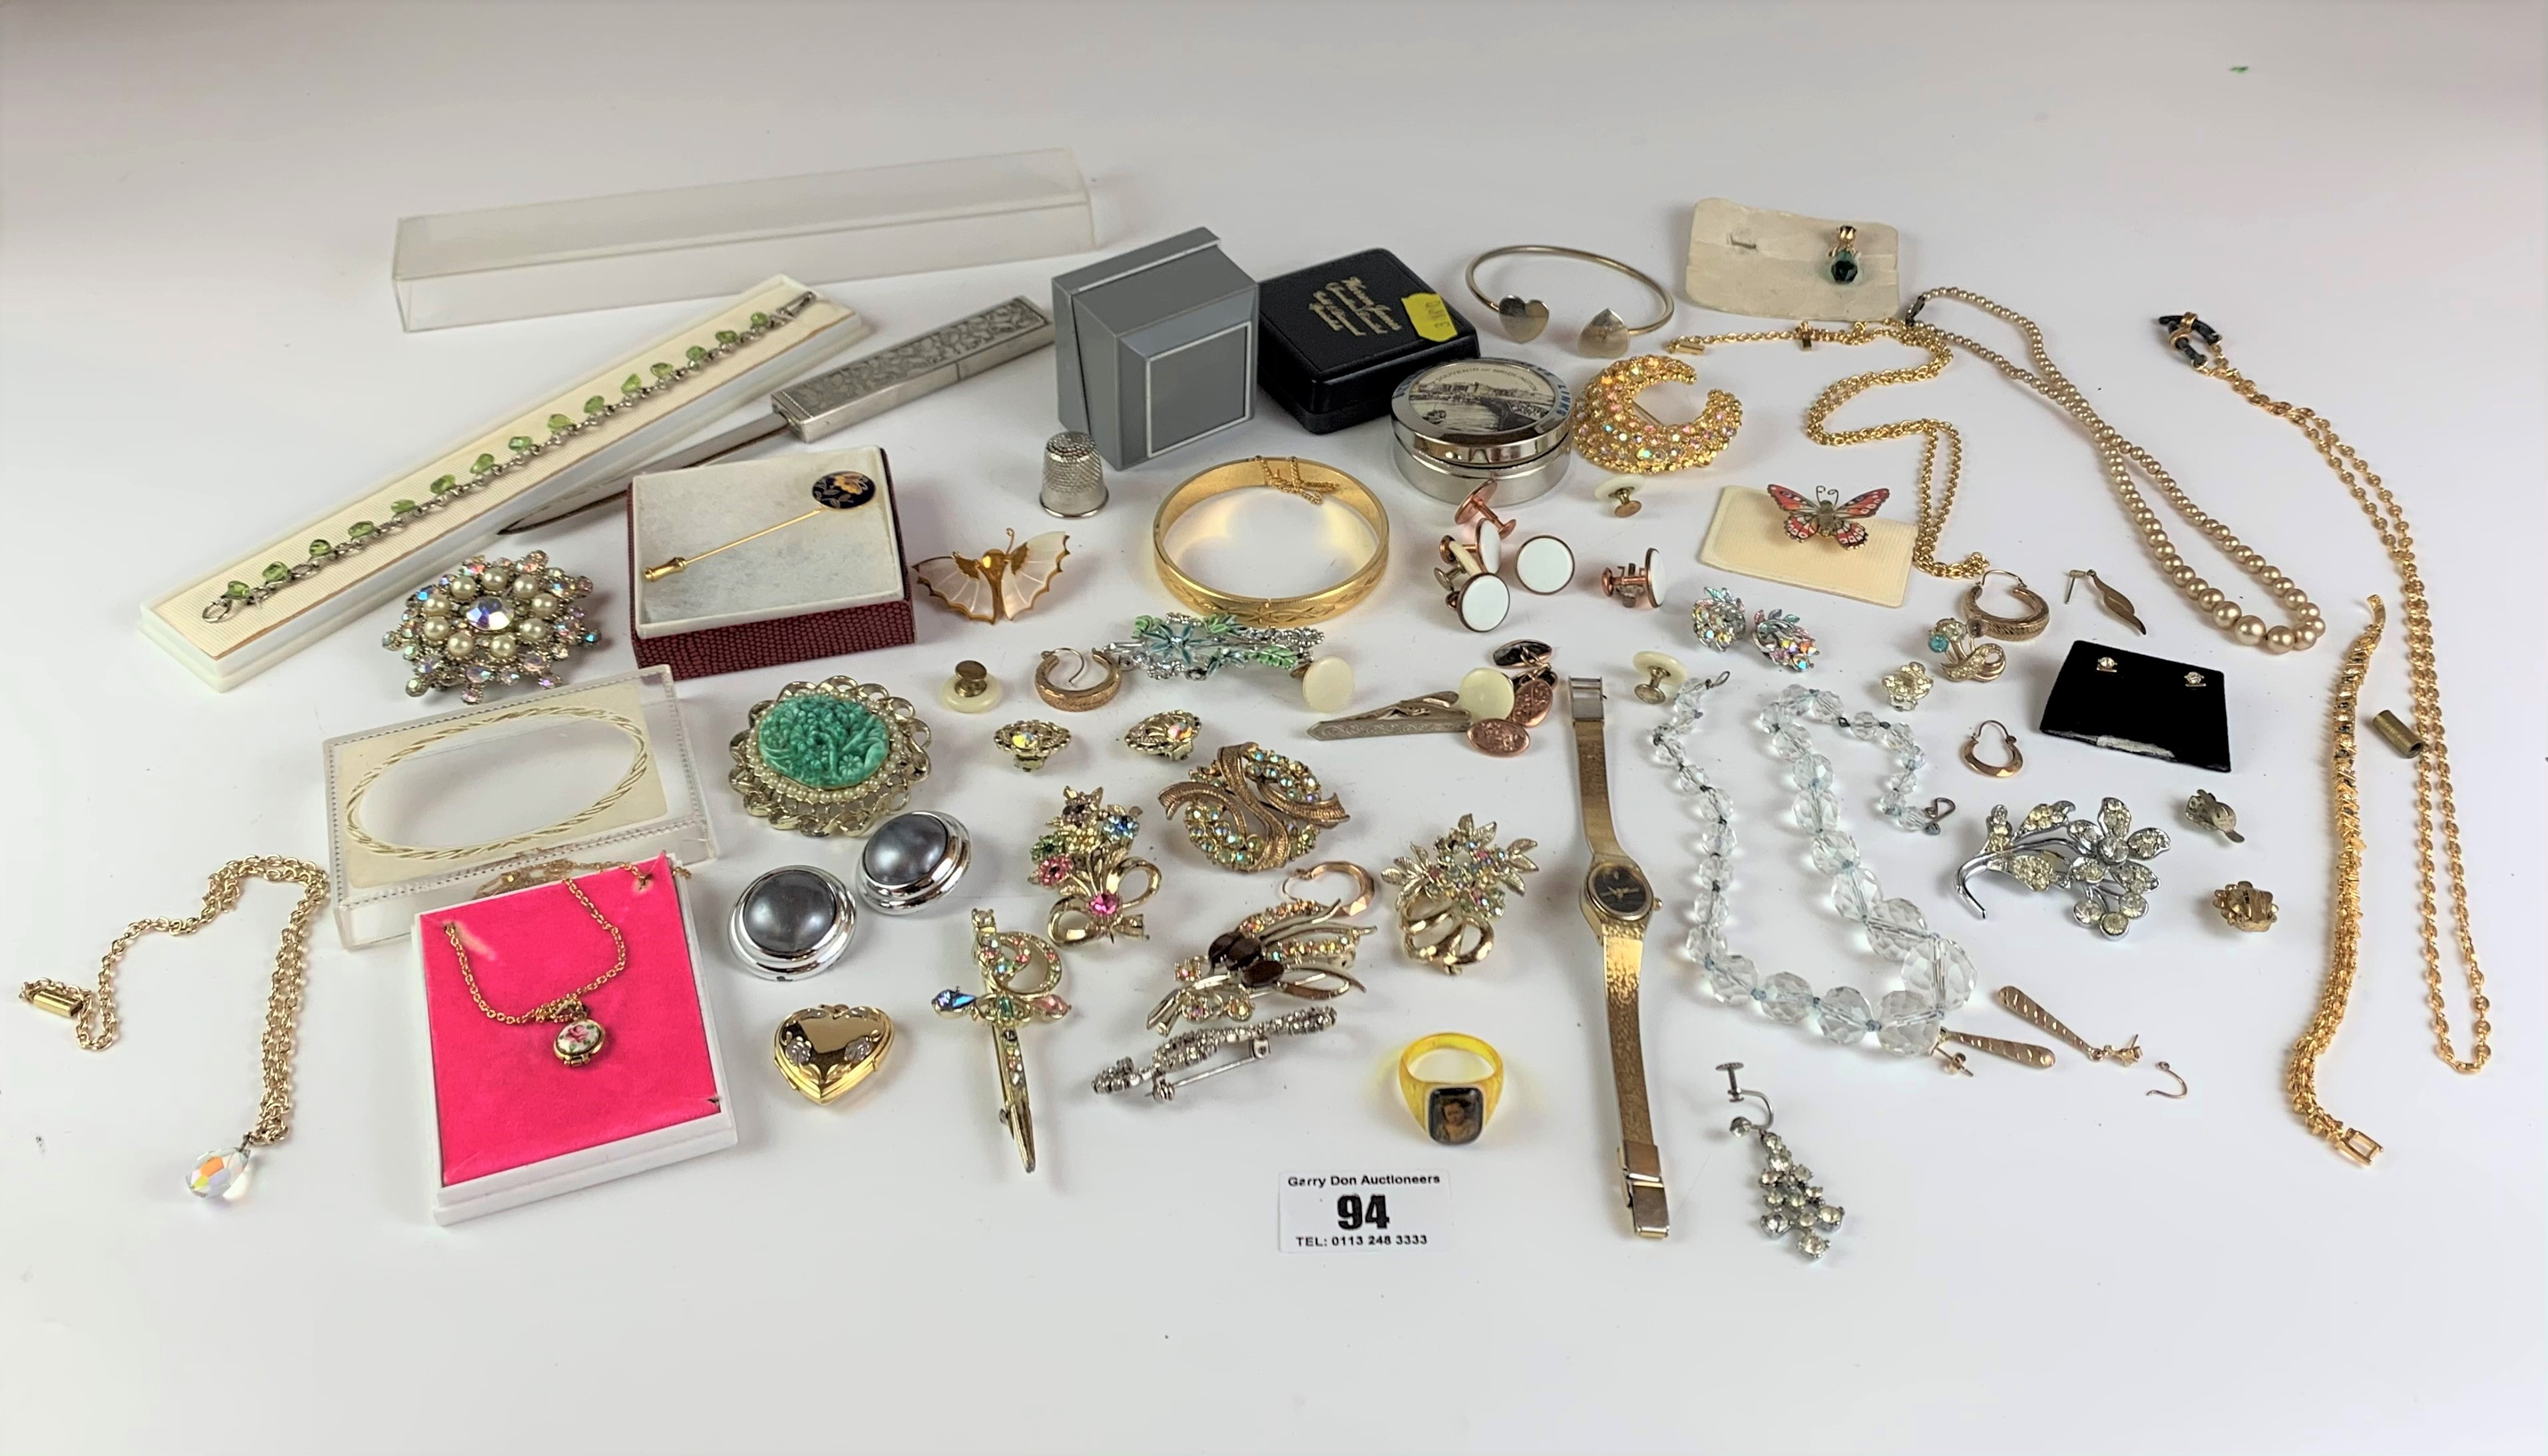 Large bag of assorted dress jewellery including necklaces, bracelets, brooches, earrings etc. - Image 2 of 11